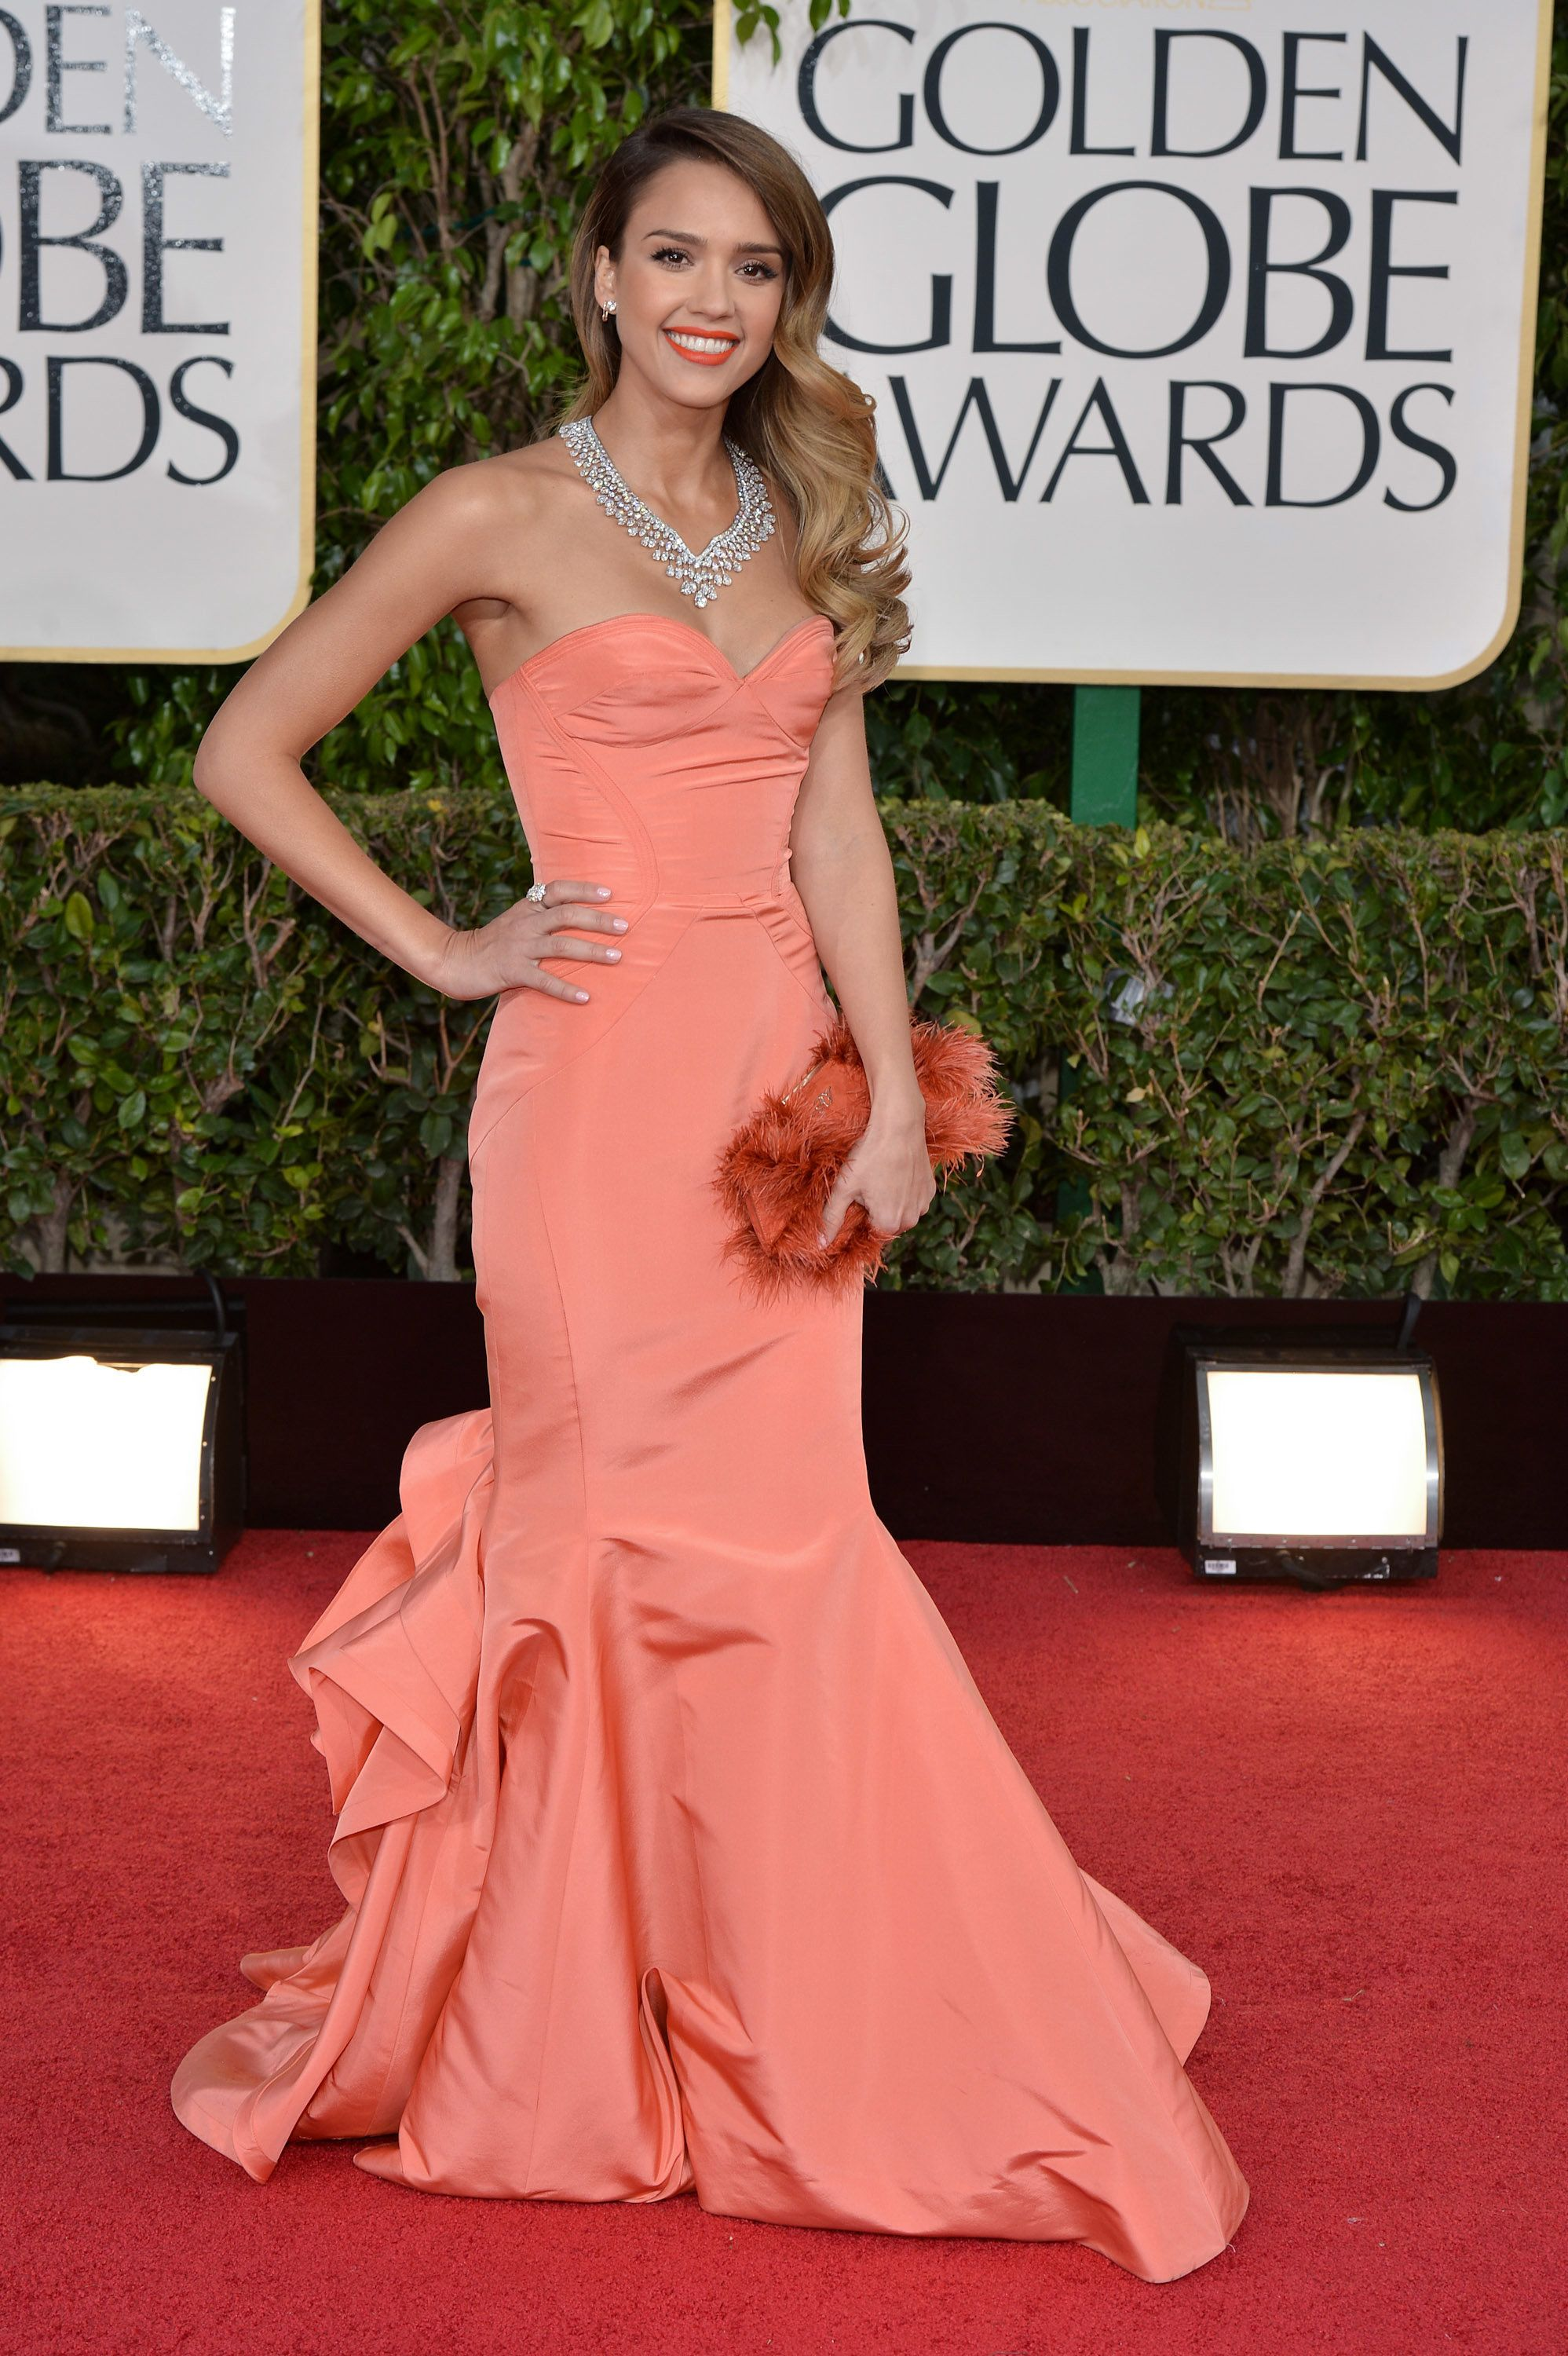 BEVERLY HILLS, CALIFORNIA - JANUARY 13:  Actress Jessica Alba arrives at the 70th Annual Golden Globe Awards held at The Beverly Hilton Hotel on January 13, 2013 in Beverly Hills, California.  (Photo by George Pimentel/WireImage)